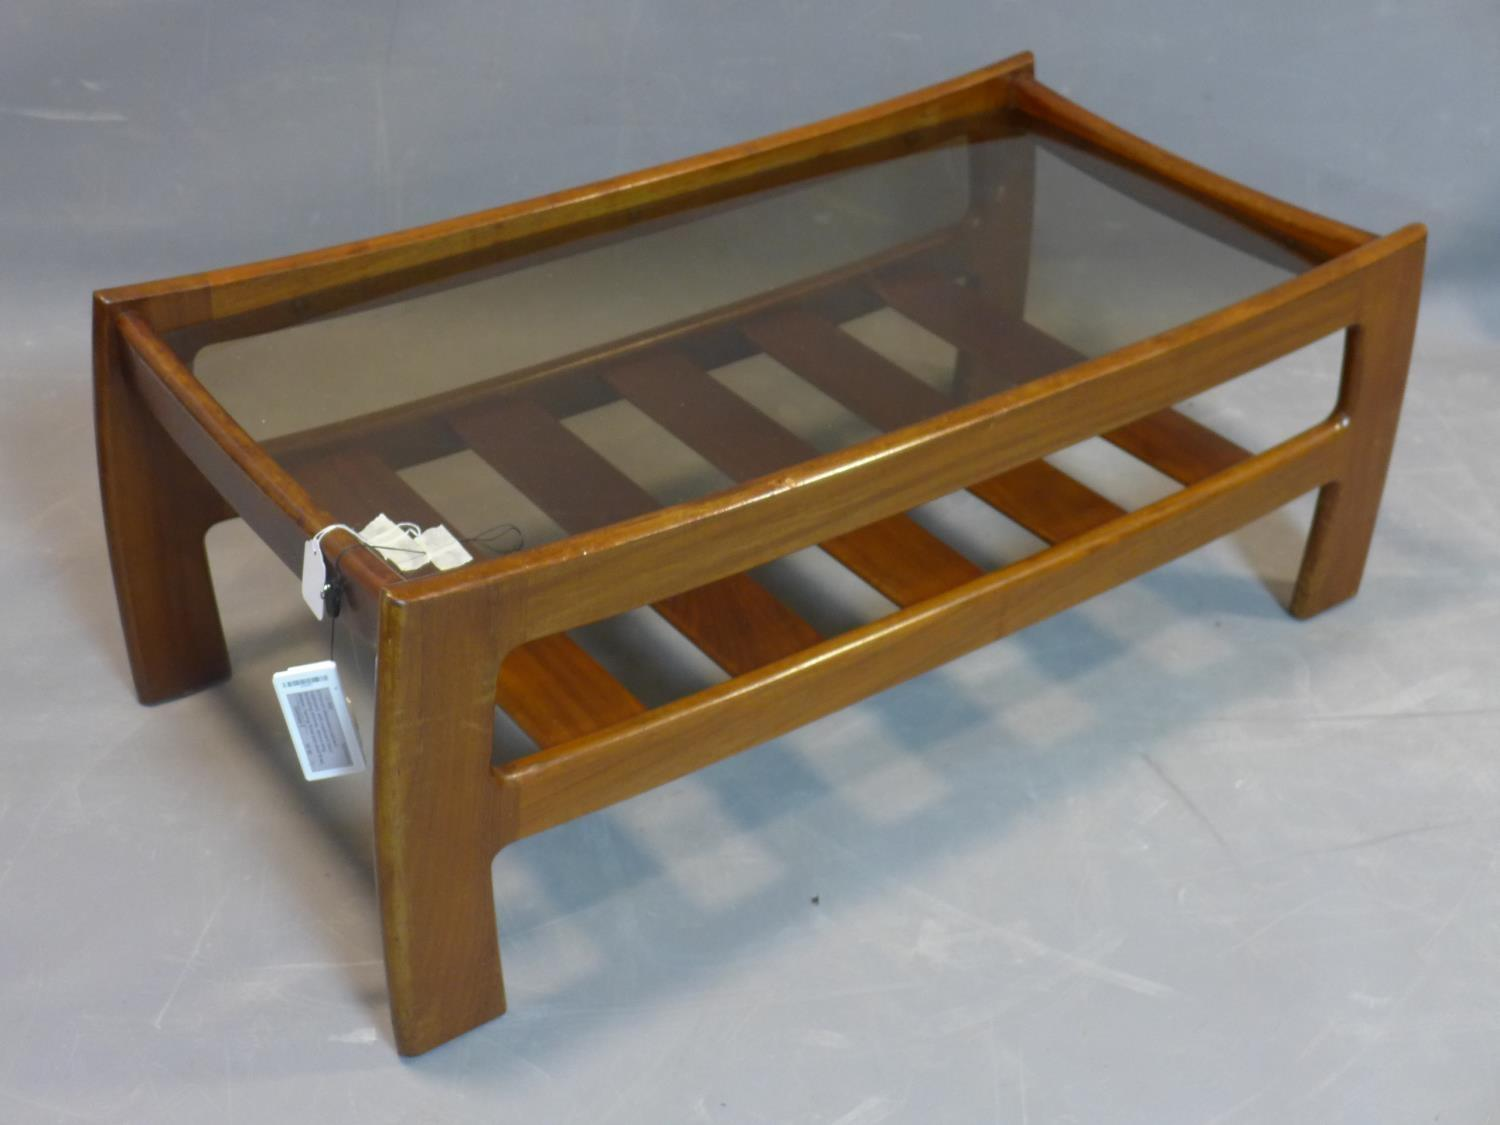 A mid 20th century teak coffee table, with glass top above undertier rack, H.40 W.105 D.53cm - Image 2 of 2